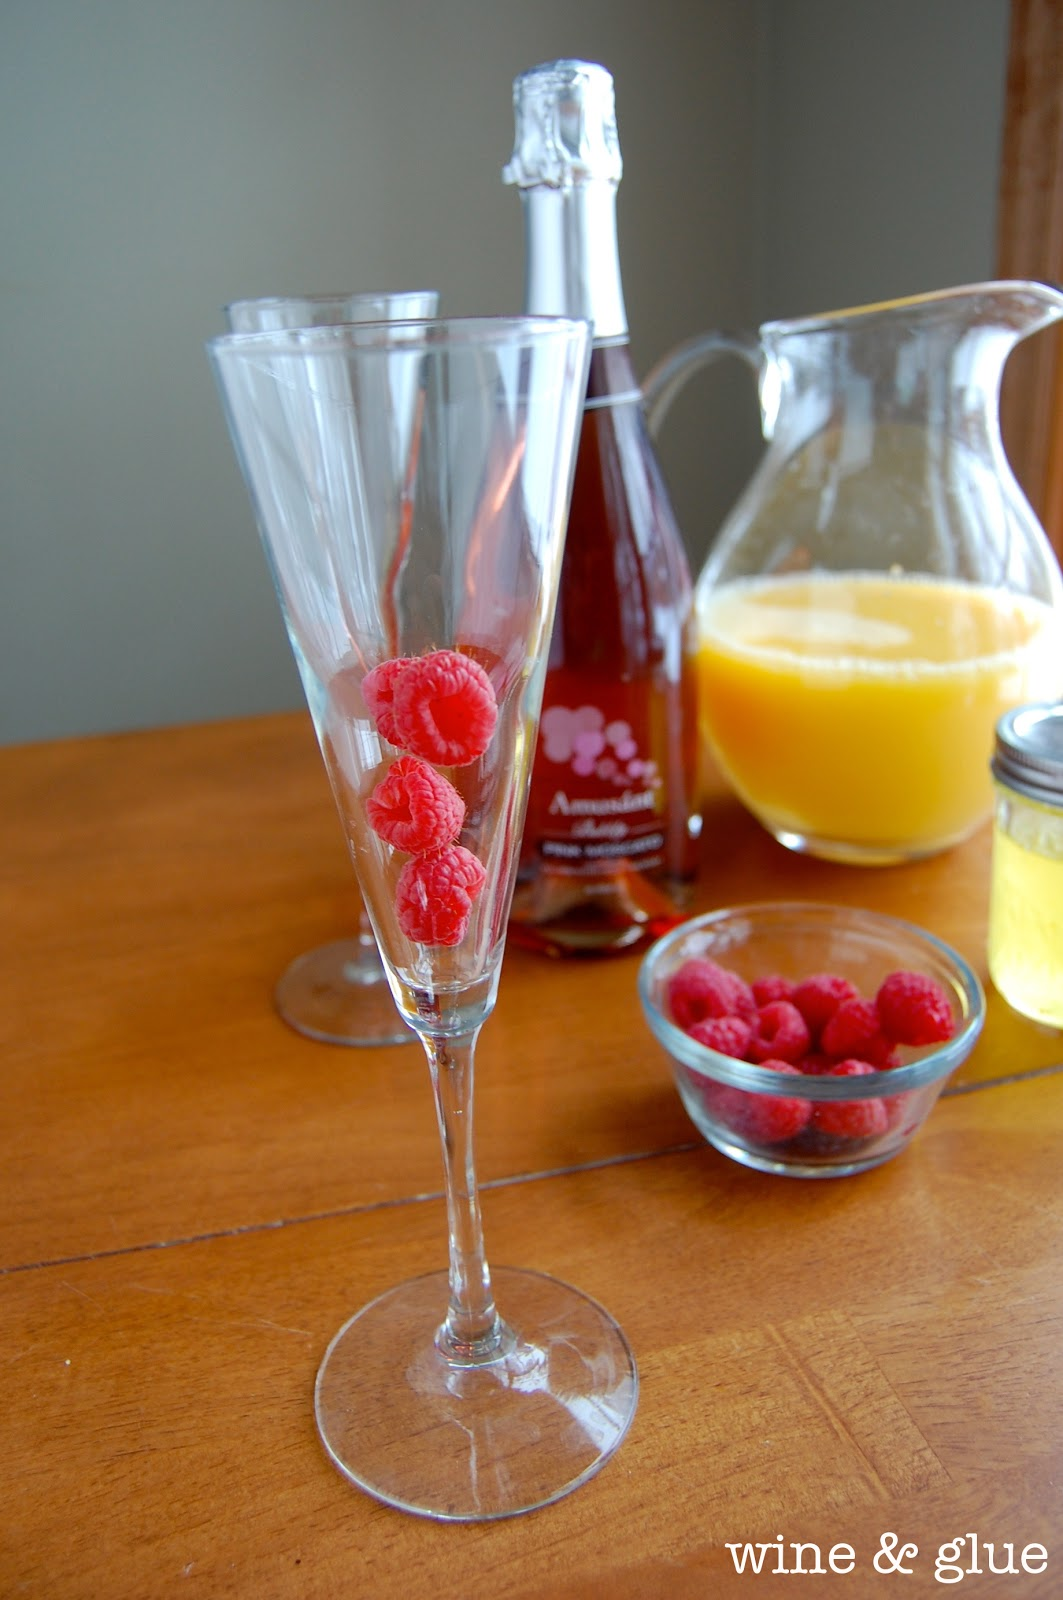 This Sunrise Mimosa cocktail is fruity, beautiful and totally refreshing. Super easy to make and tastes delicious!